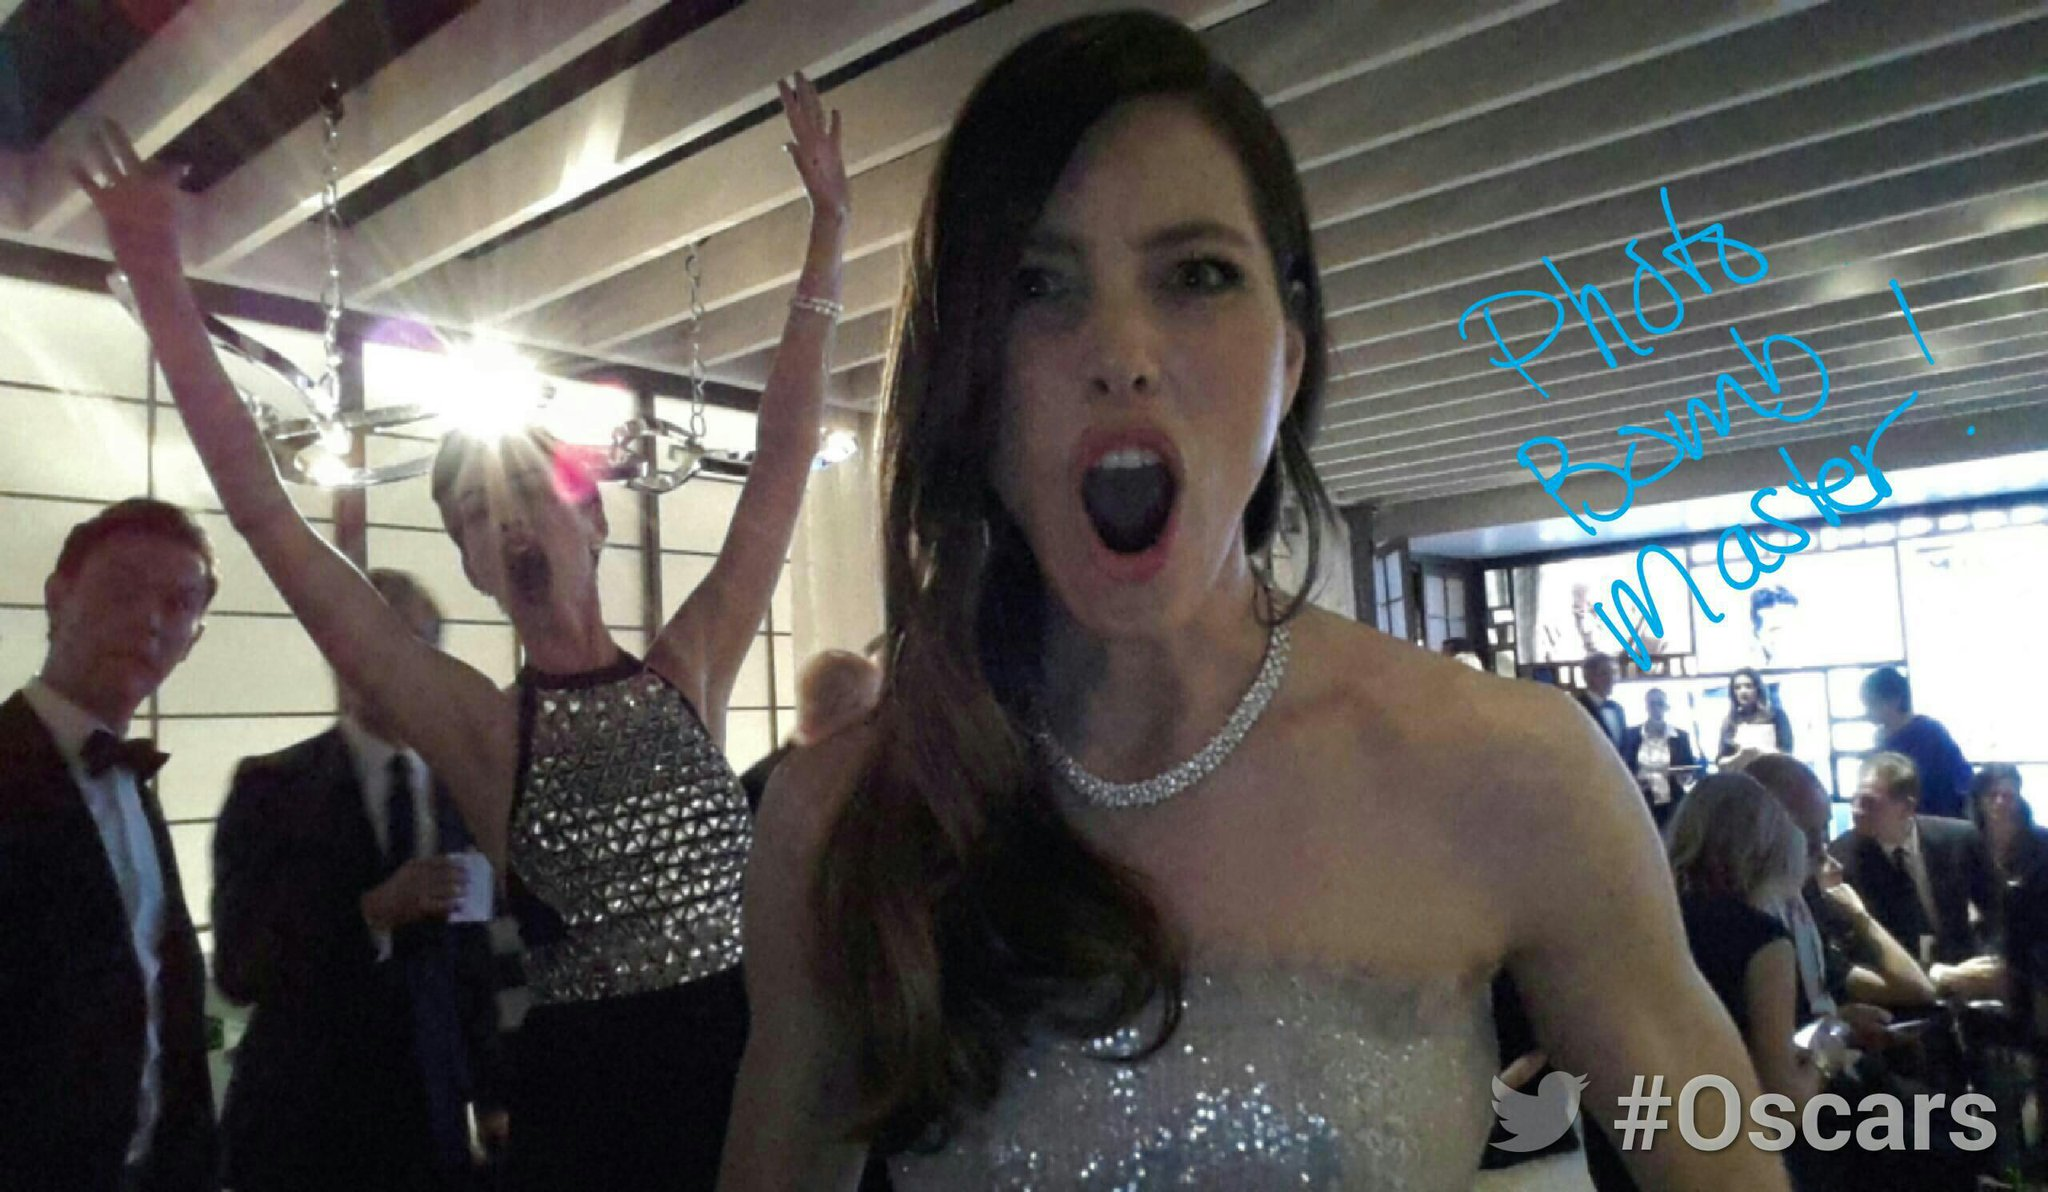 RT @TheAcademy: Backstage at the #Oscars in the #ArchDigestGreenRoomwith@JessicaBiel photobombed by Anne Hathaway http://t.co/k3gusKxQ8o